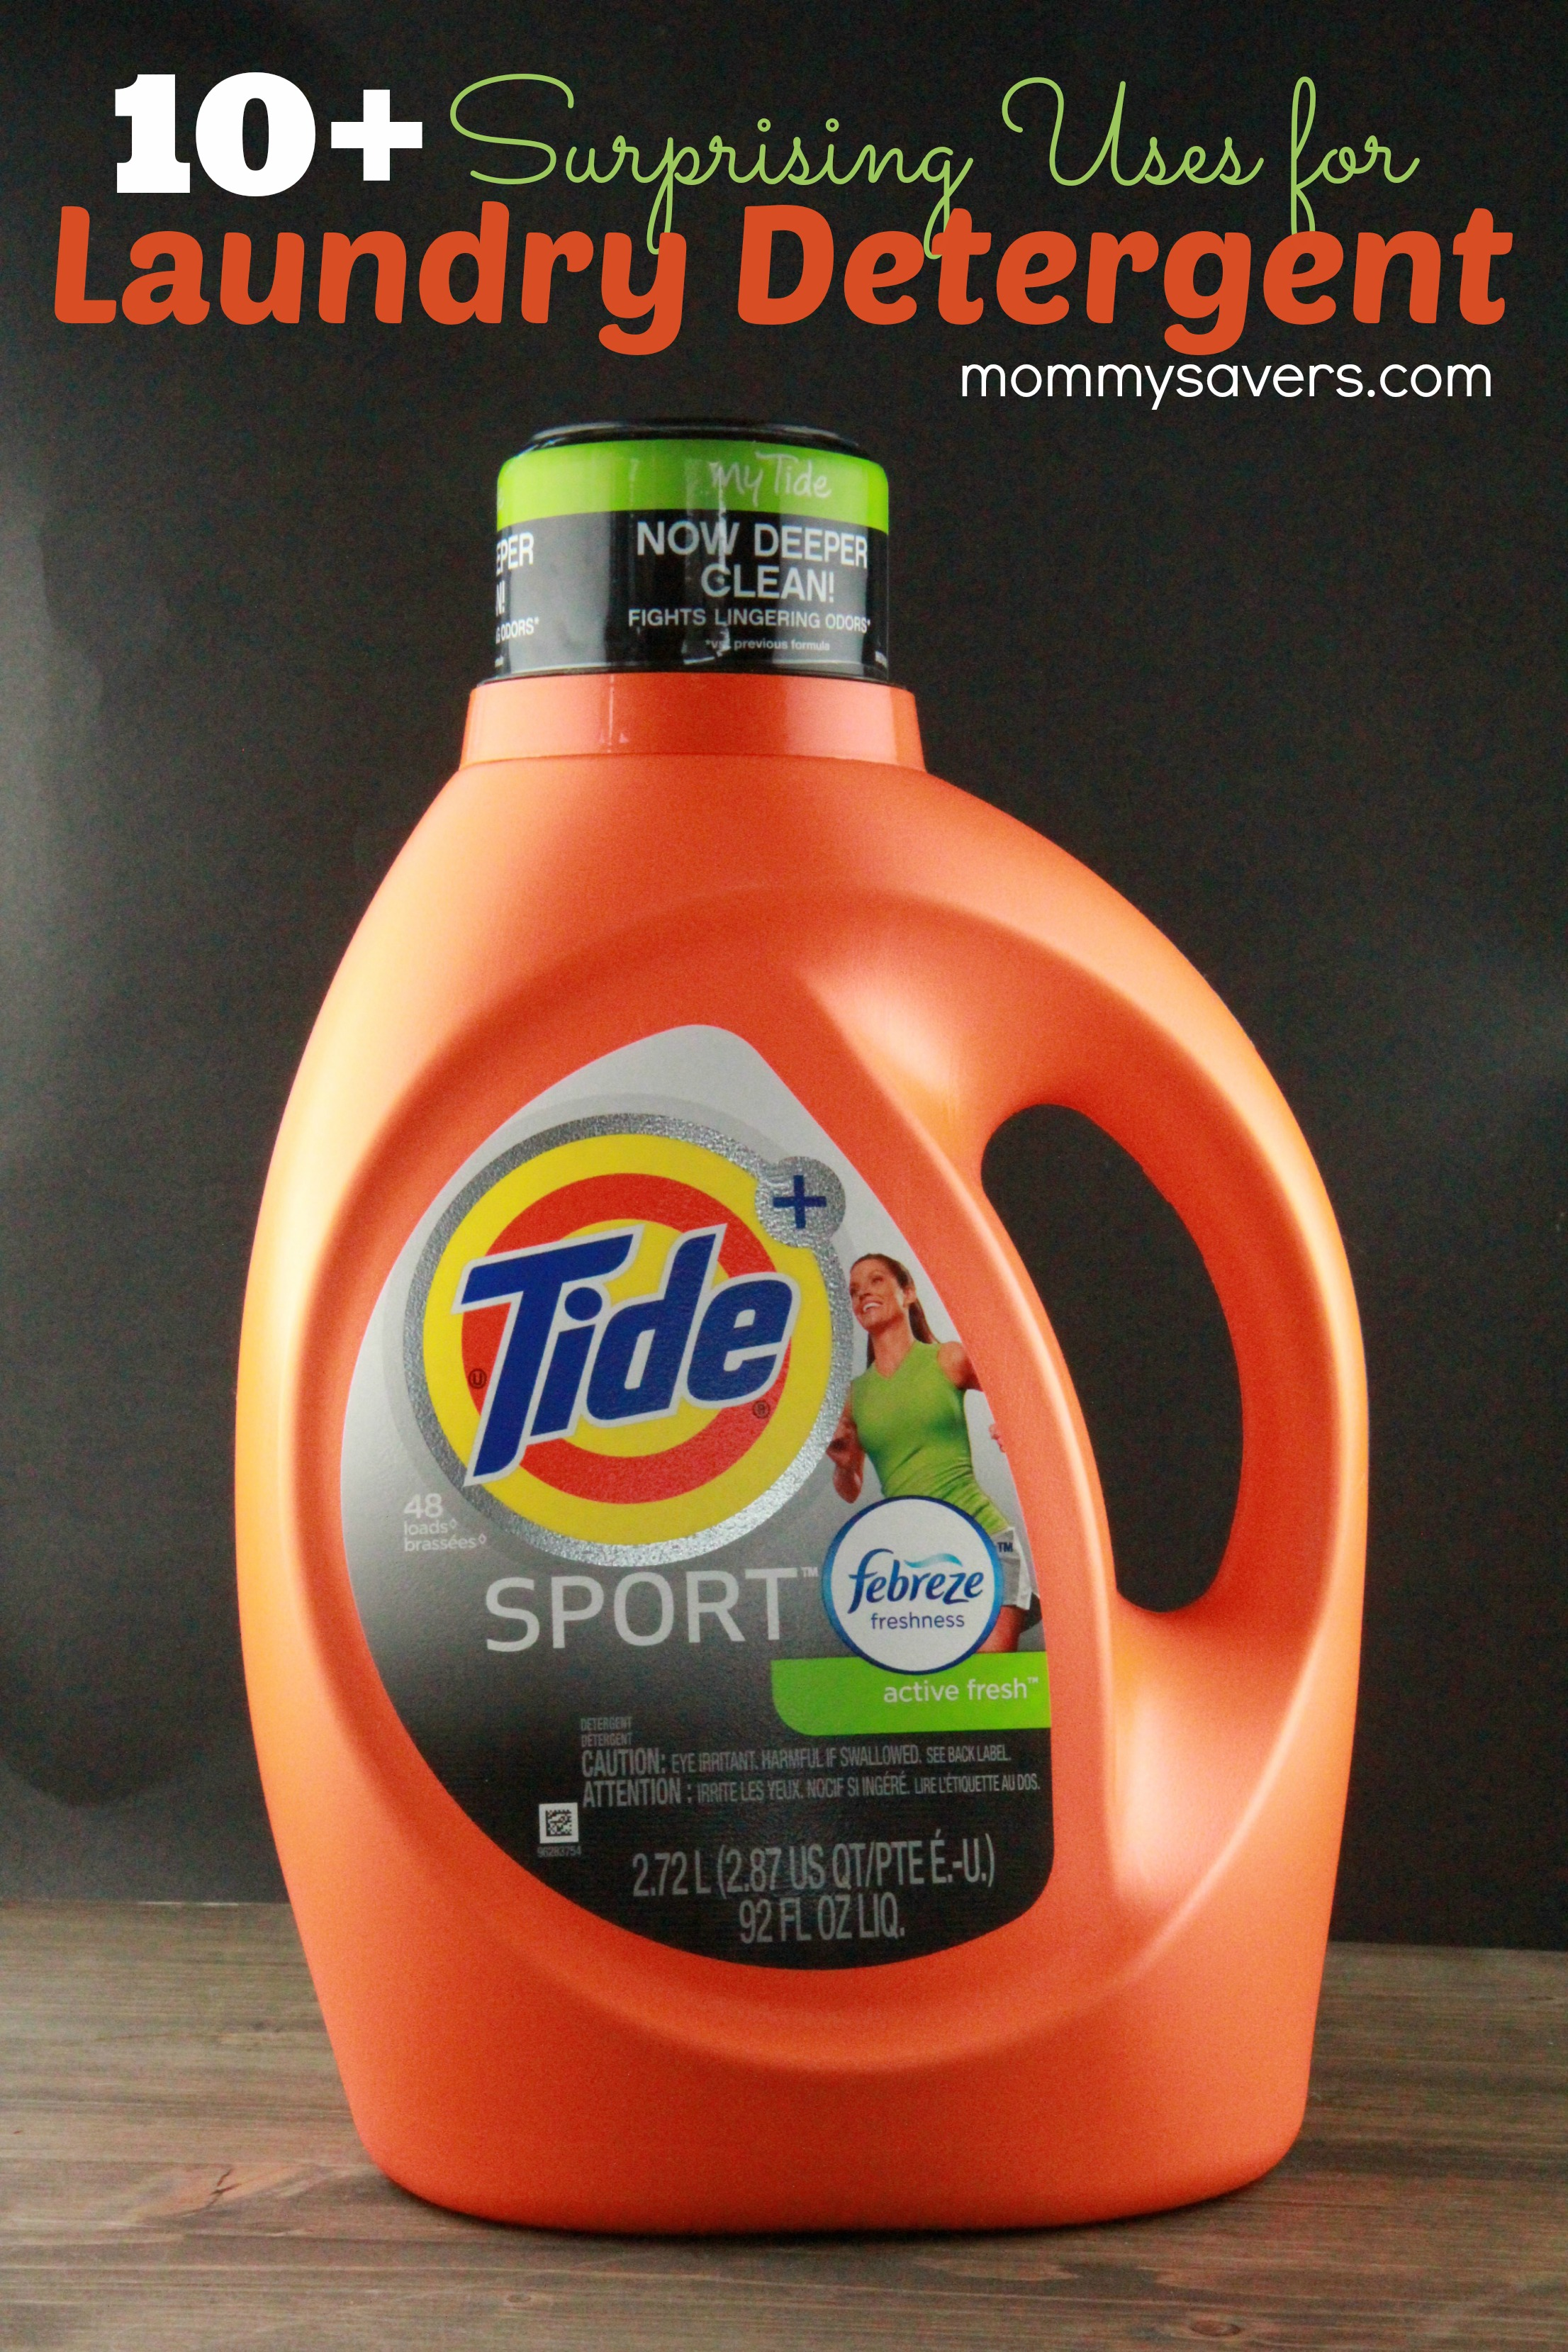 10 Other Uses For Laundry Detergent Mommysavers